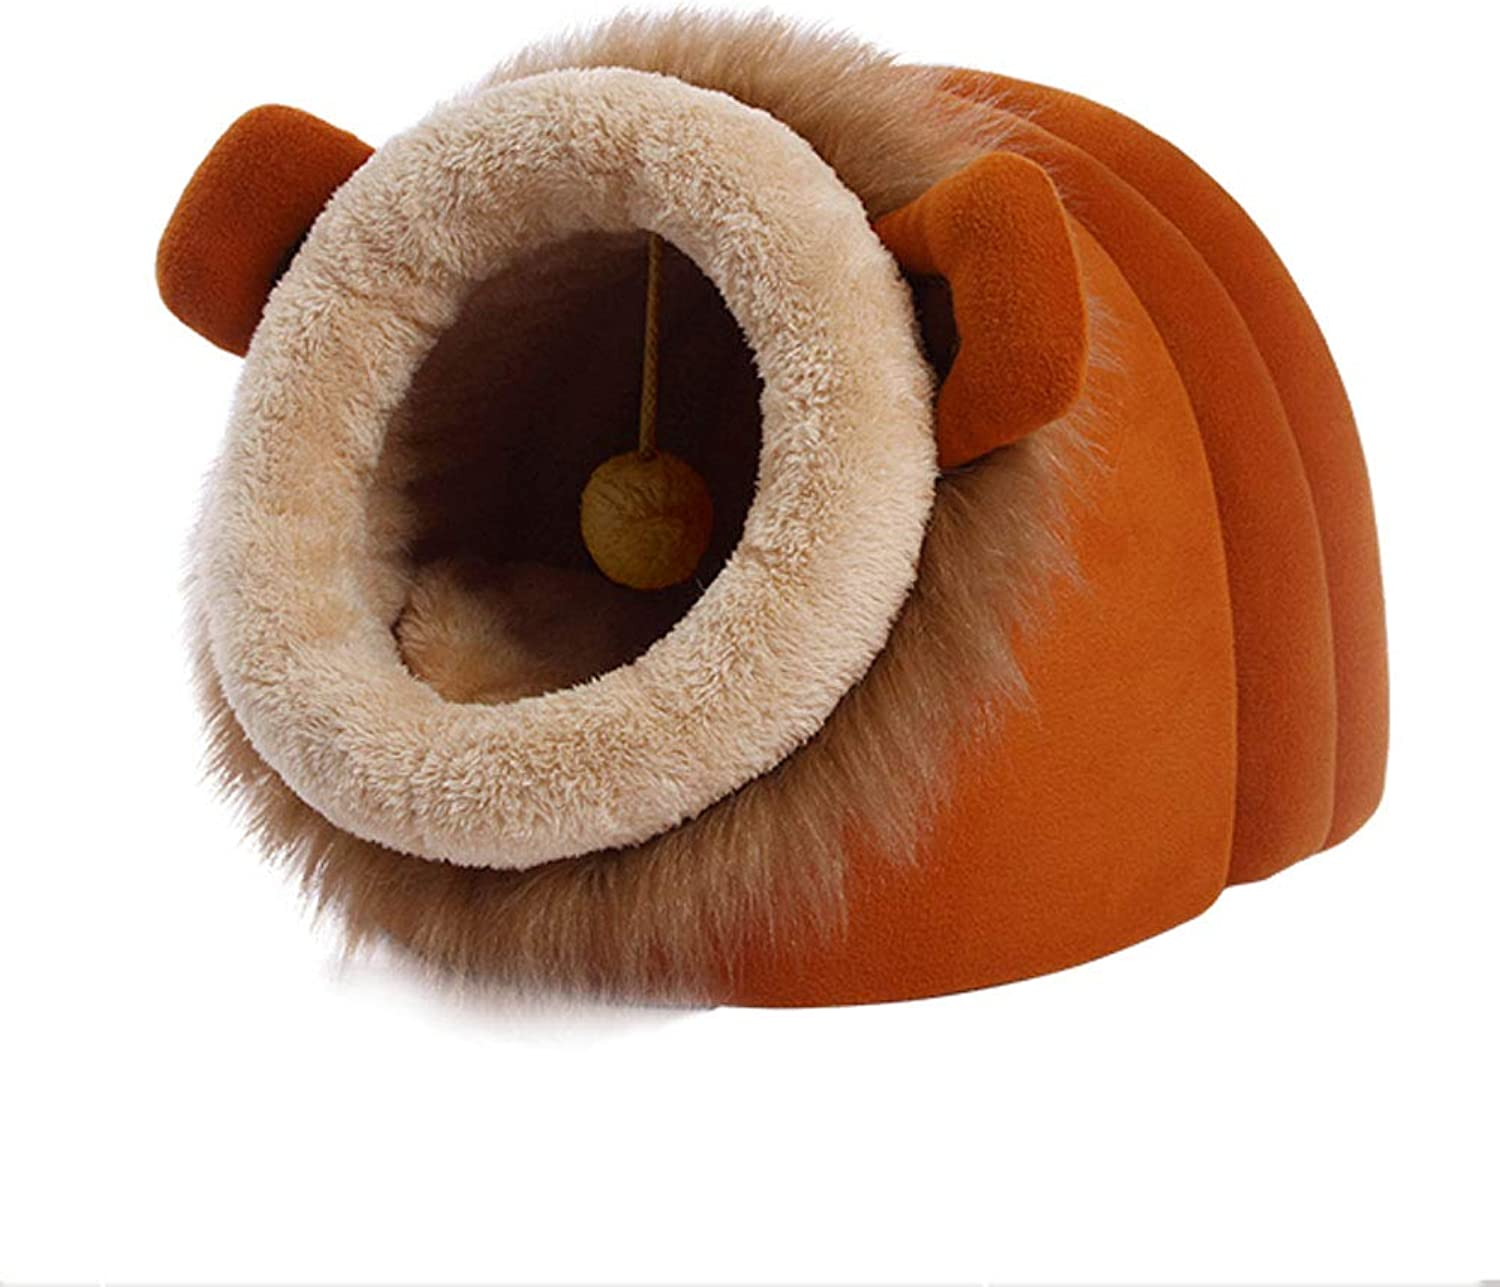 GCHOME Dog bed Cat Bed,Washable Nonslip Dog Kennel Cat Nest Sleeping Bag,Removable Waterproof Breathable Plush Warm Cushion Small Pet Nest (Size   M)